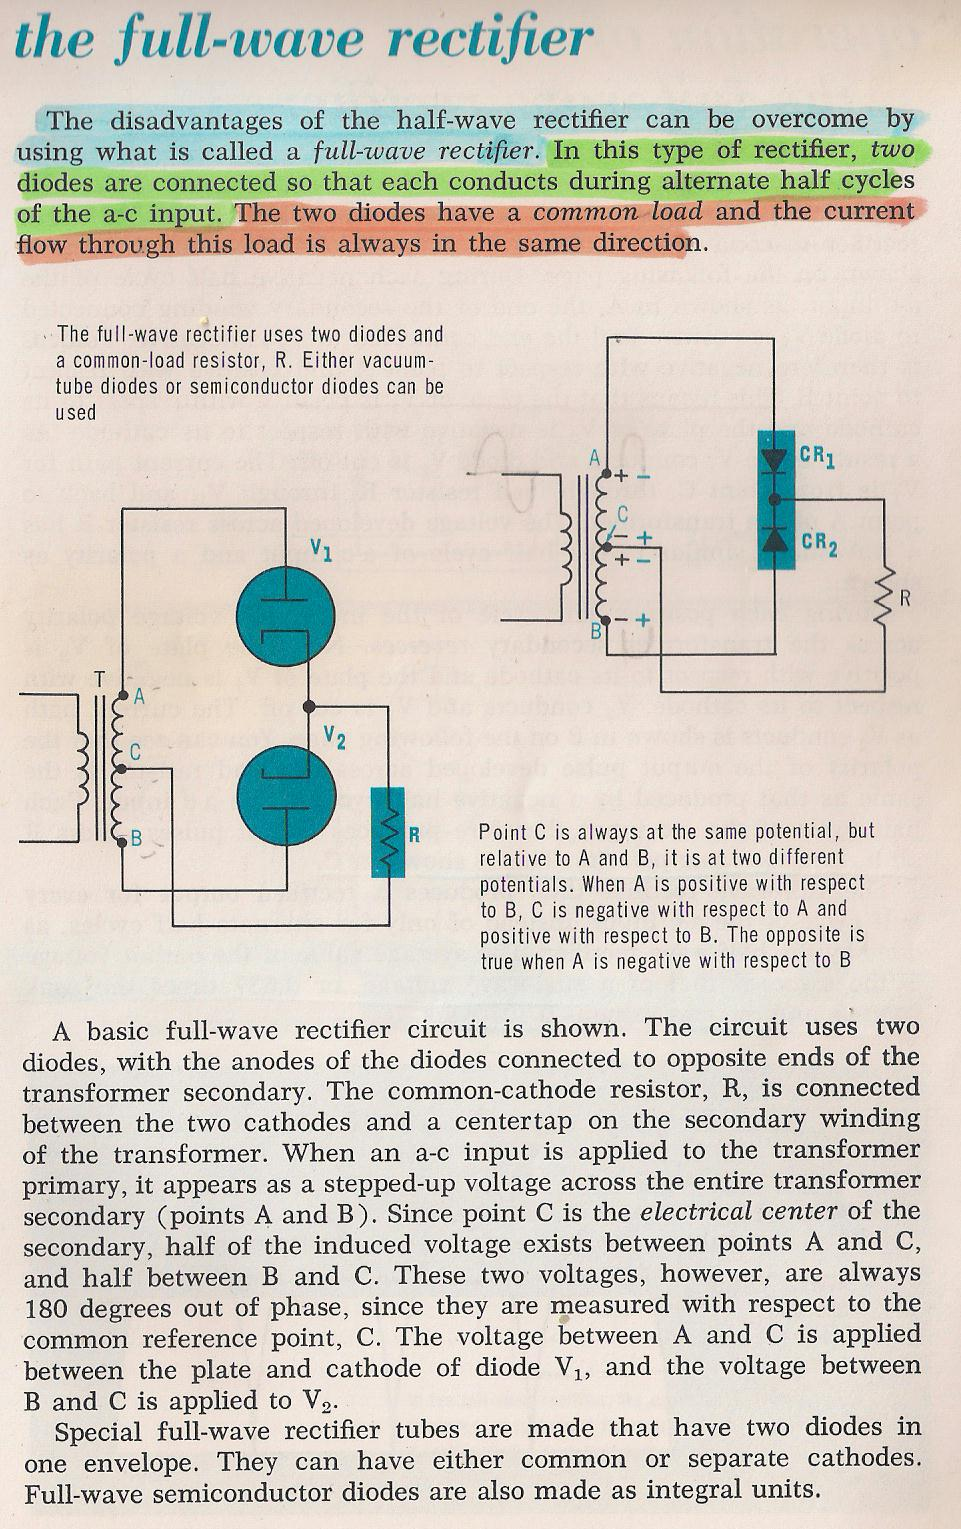 Power Supplies Circuit Positive And Negative Half Cycles Halfcycle Supply 004 Characteristics Of Wave Rectifiers By Larry E Gugle K4rfe